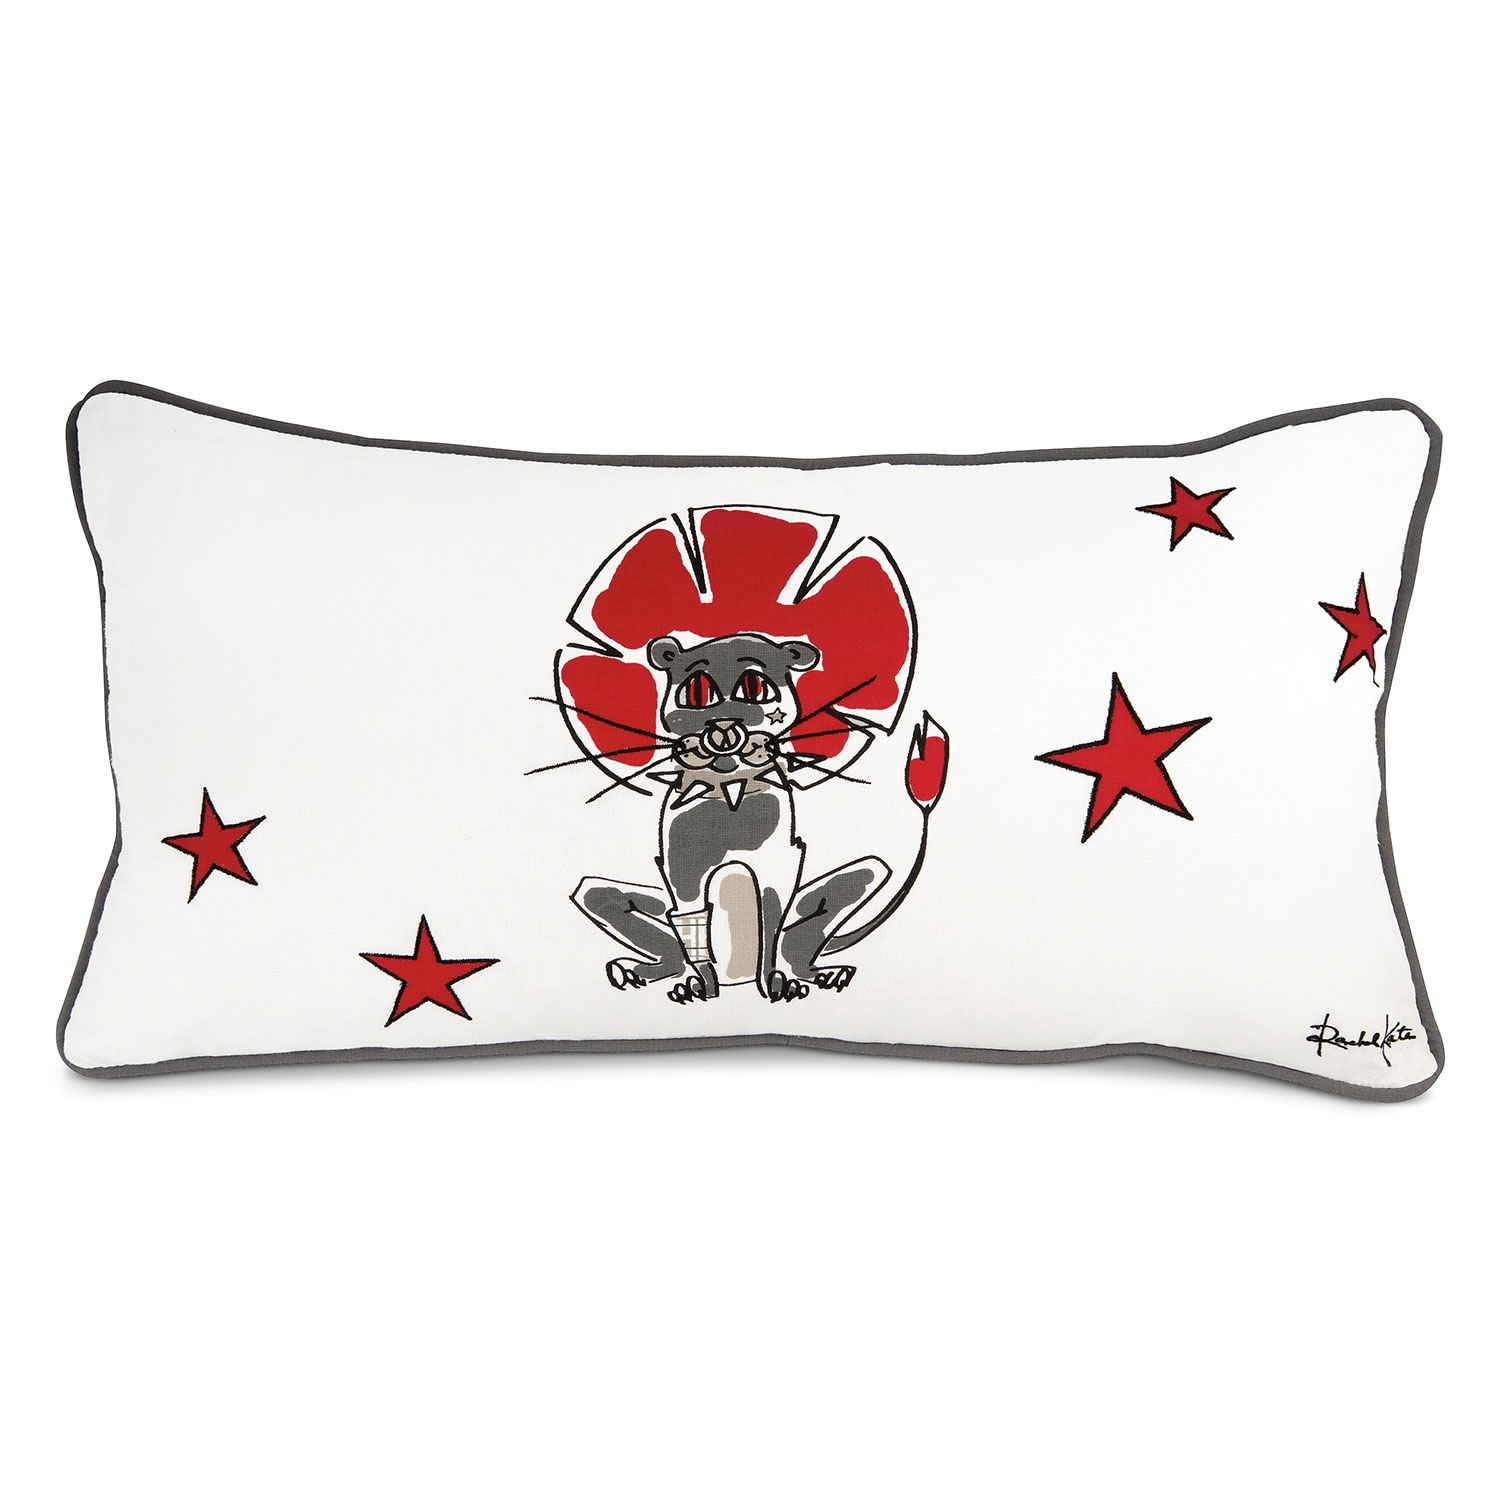 Punker Lion Decorative Pillow